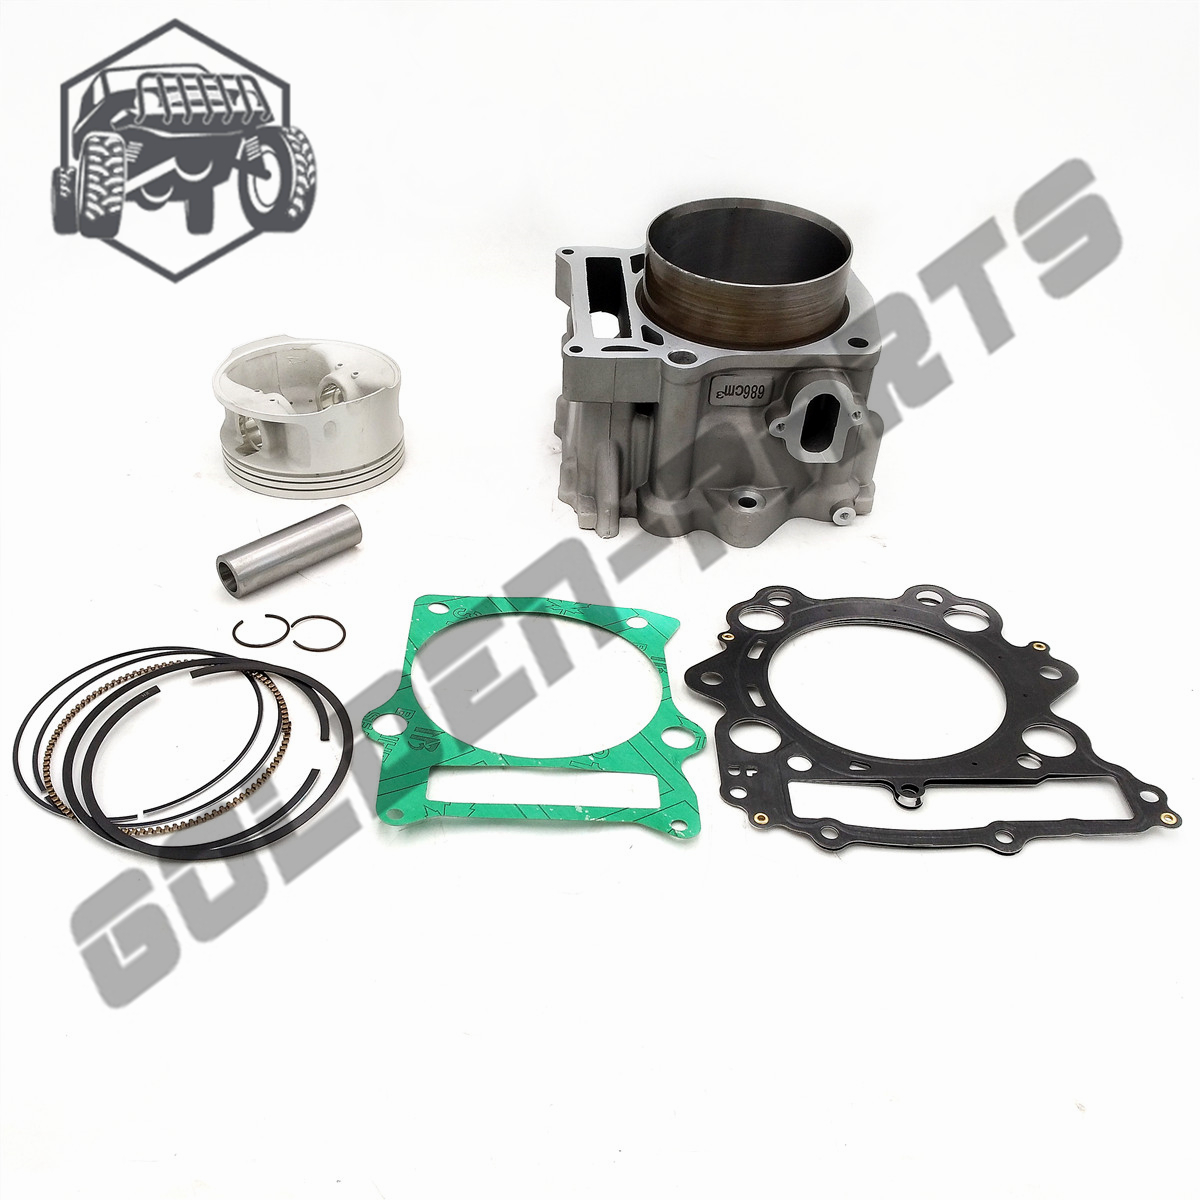 KUOQIAN HISUN Parts HS700cc HS 700 Cylinder Assy Piston Kit Rings For Hisun 700cc HS700 ATV UTV Parts High Quality-in ATV Parts & Accessories from Automobiles & Motorcycles    1